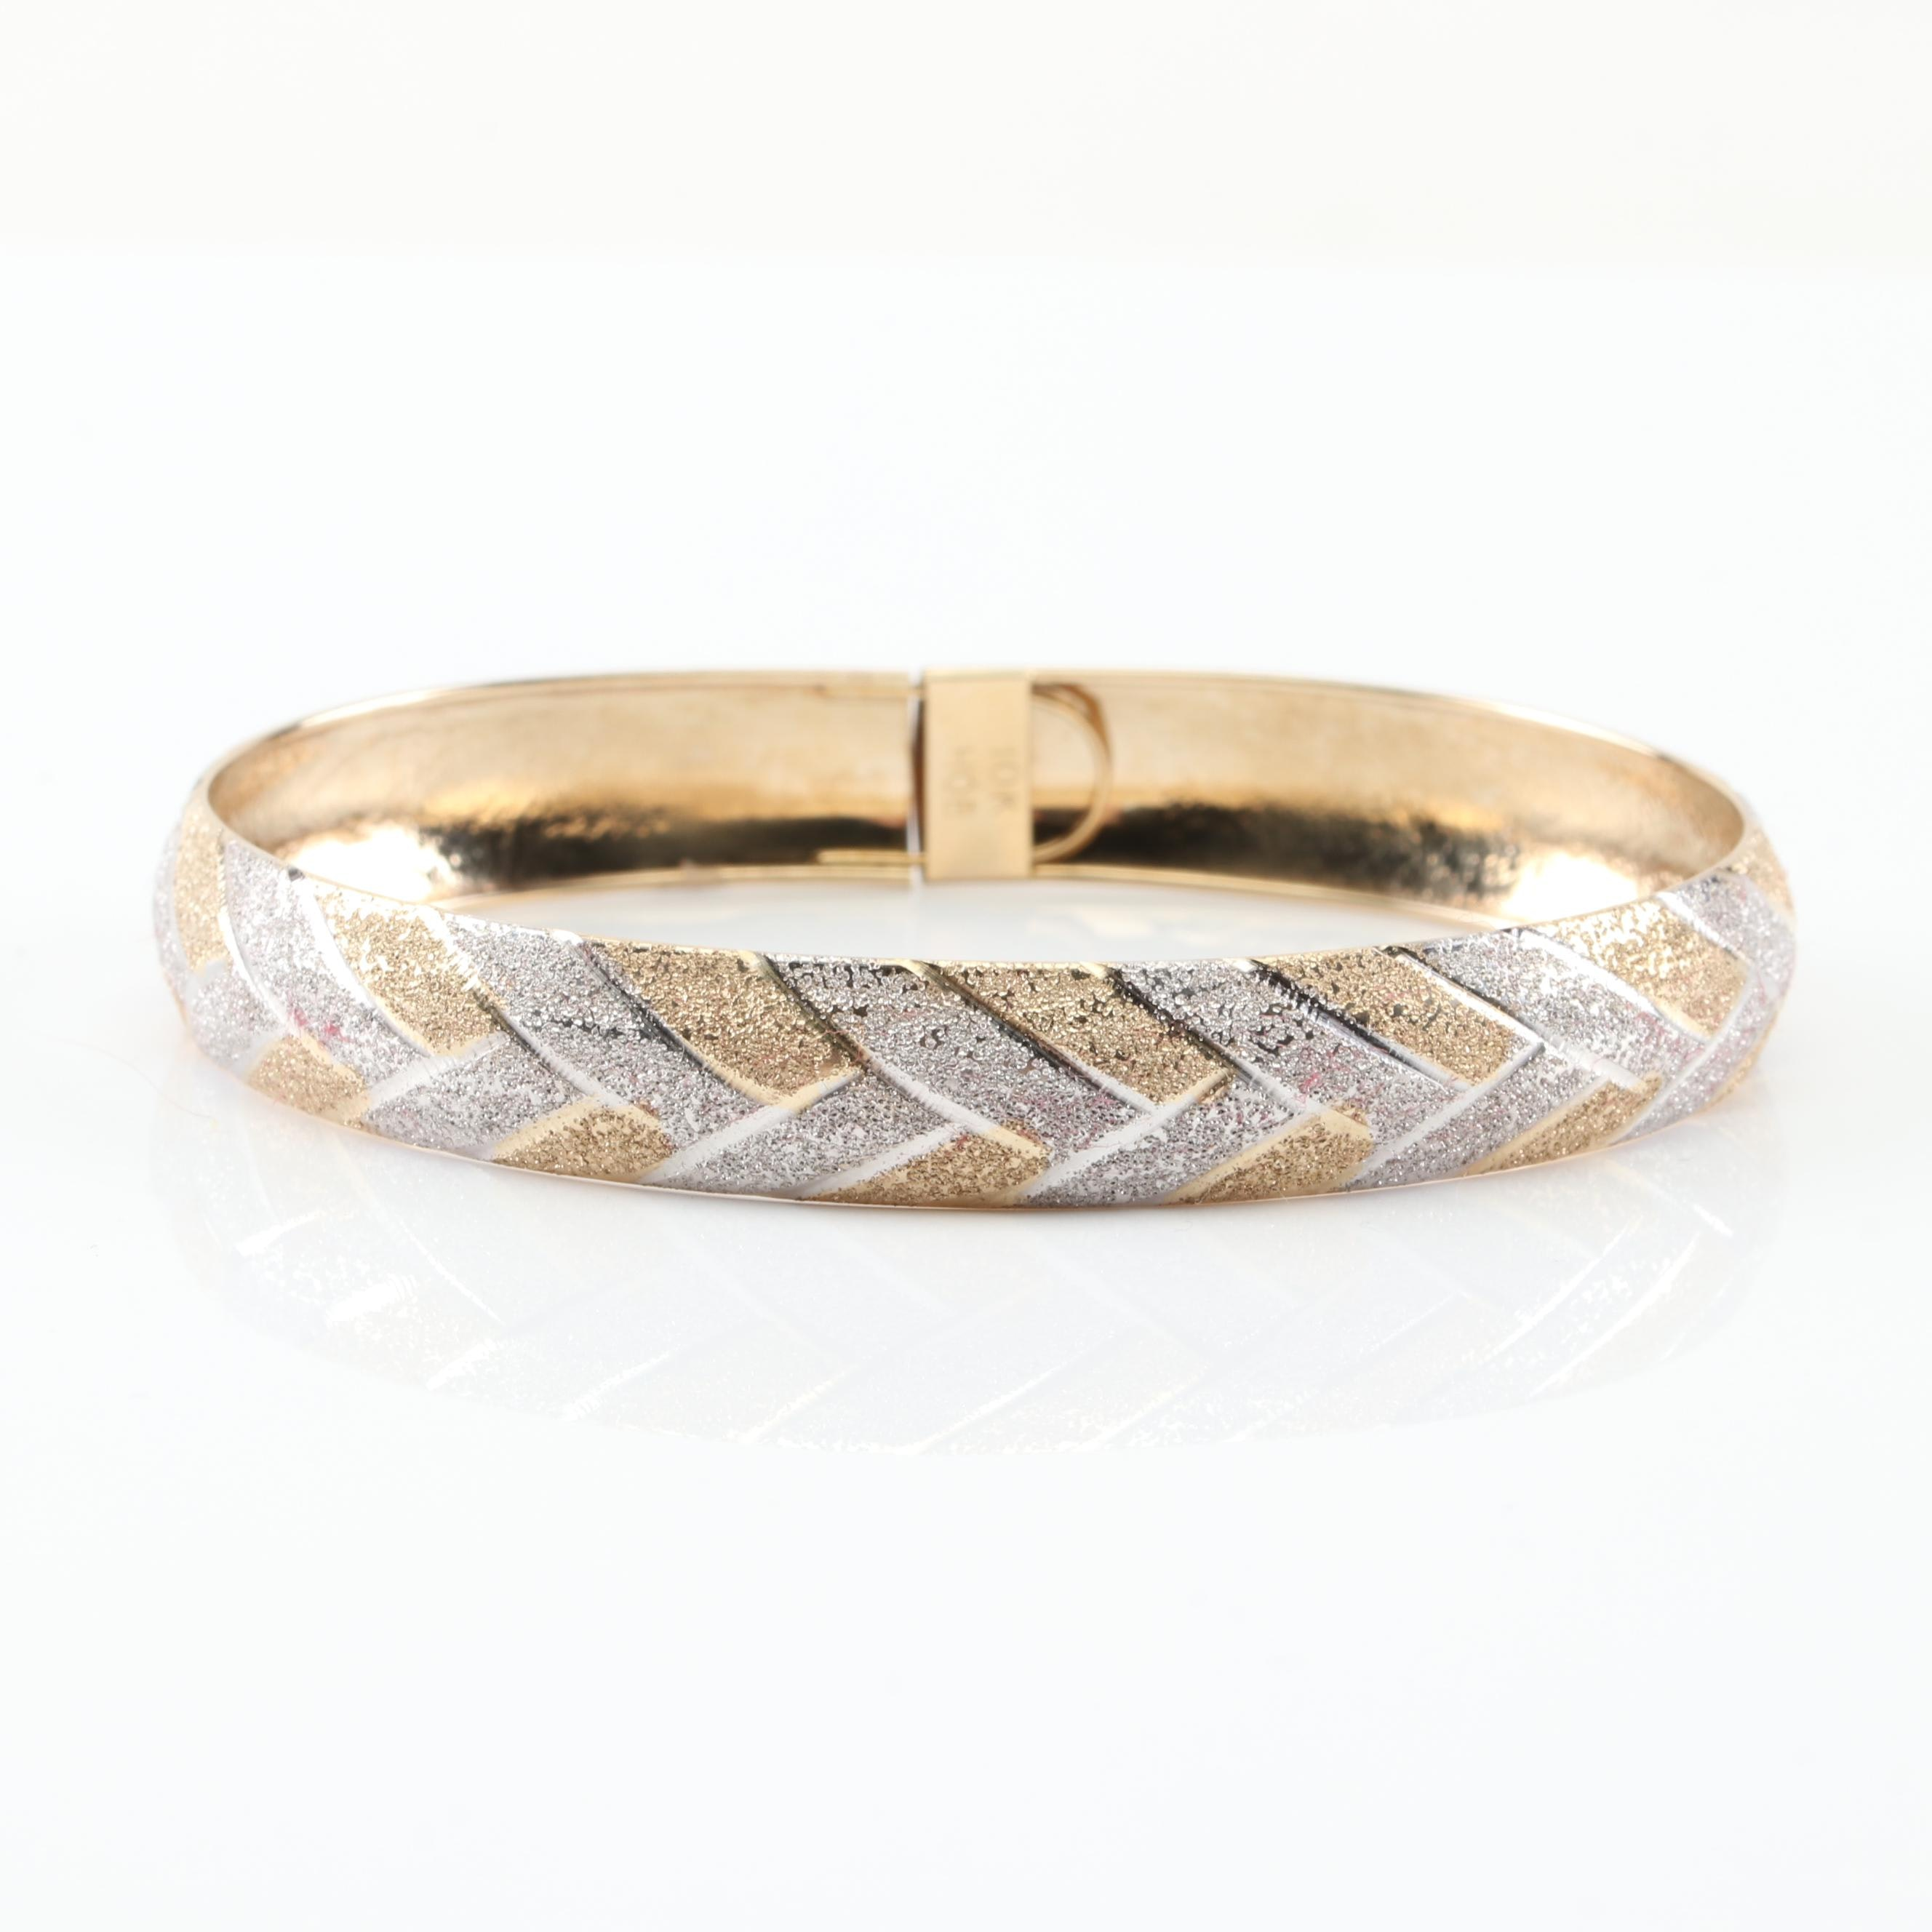 10K Yellow Gold and White Gold Granulated Finish Flexible Bangle